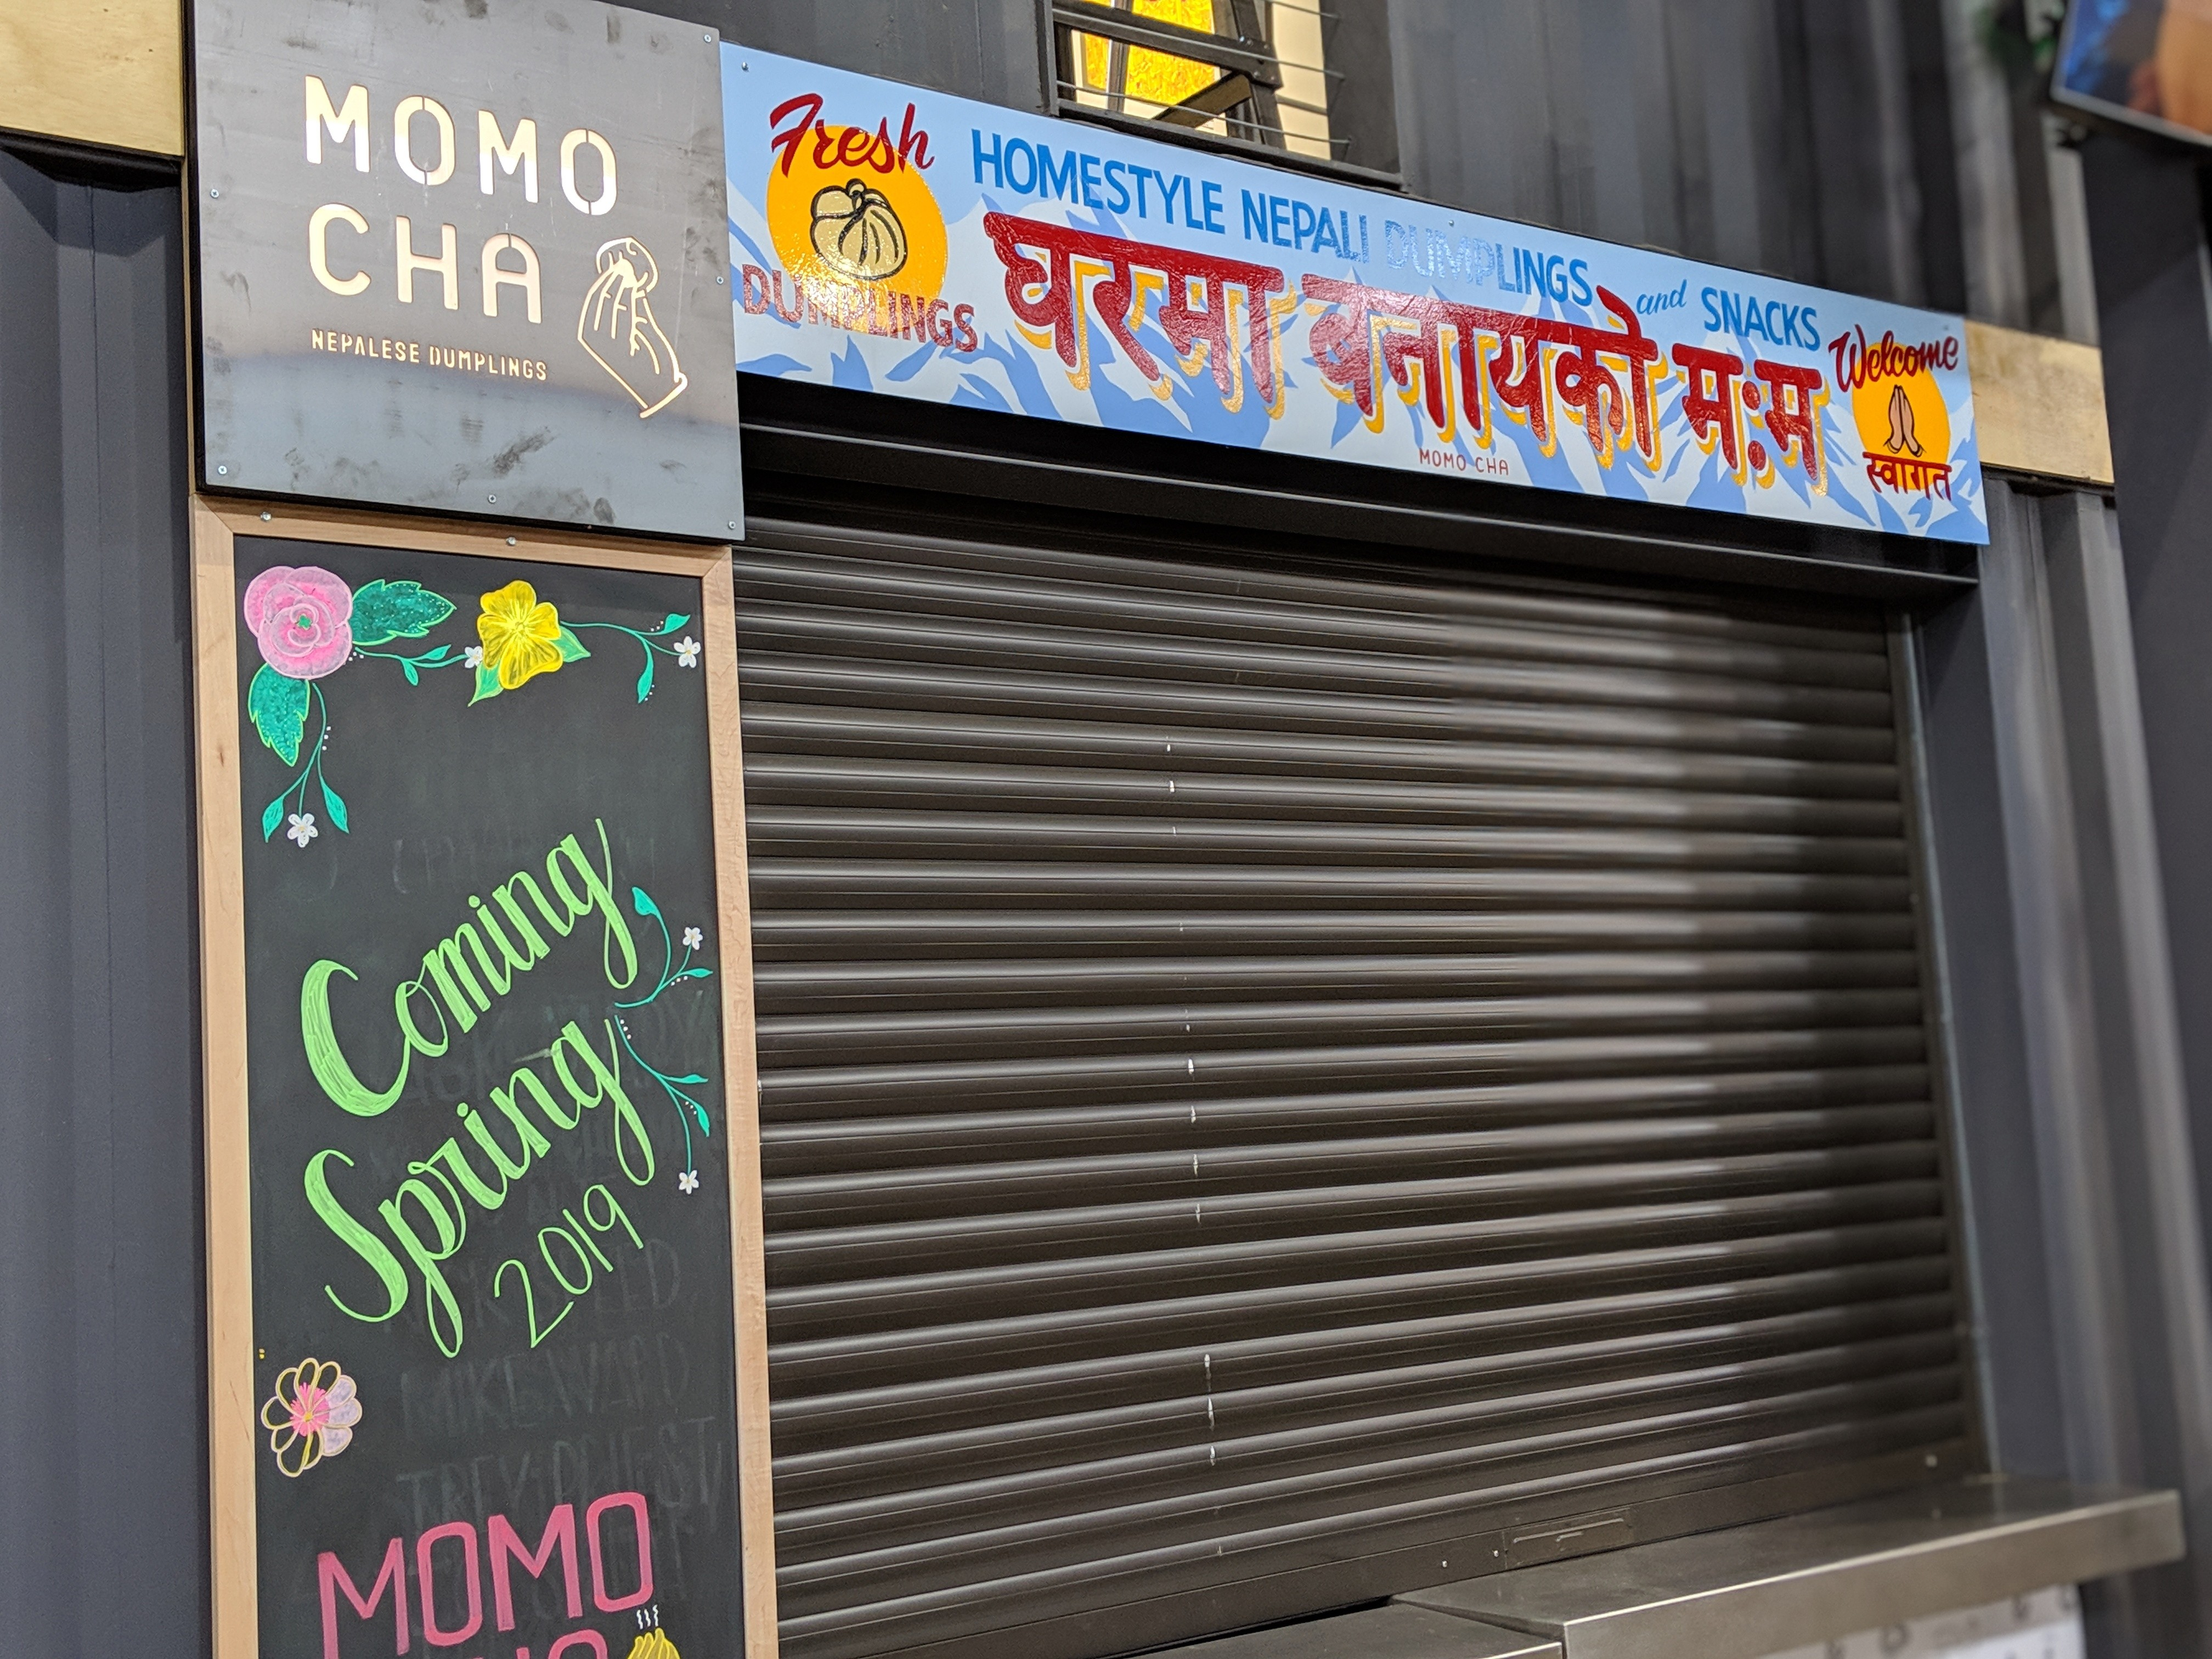 Detroit's first Nepalese dumpling shop opens Friday in the Cass